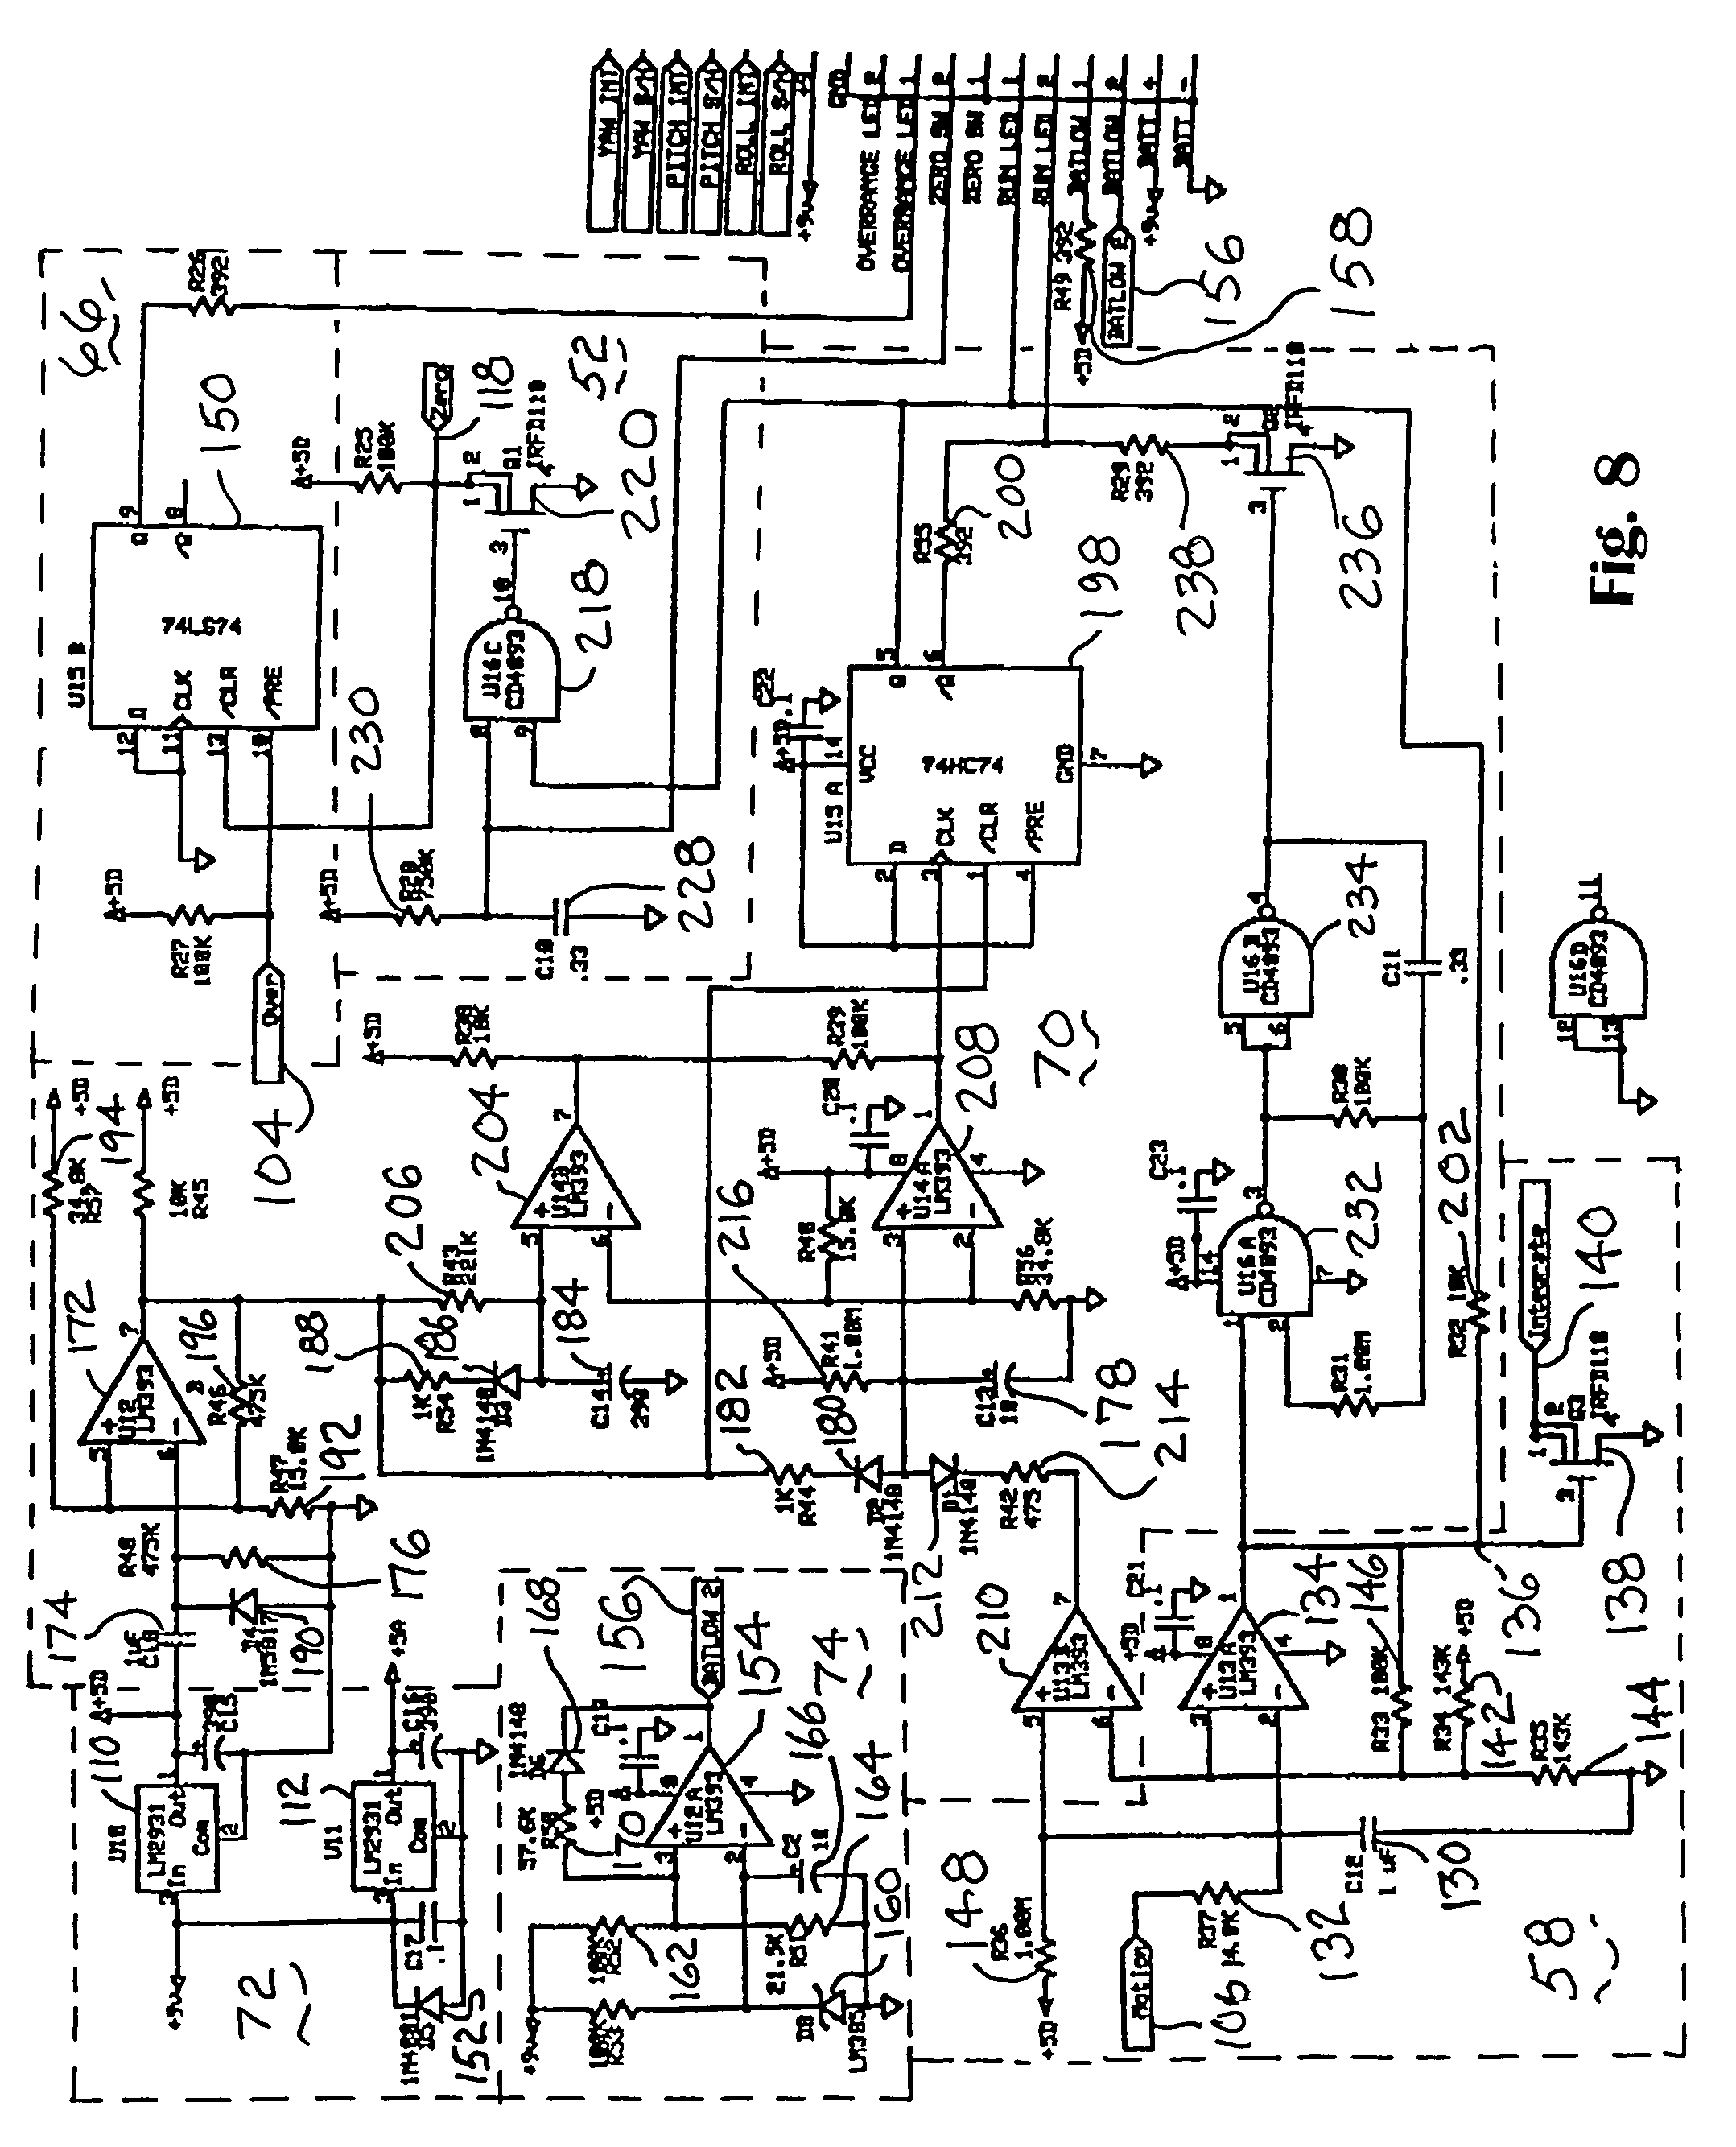 DIAGRAM] Truckstar Tarp Motor 5543095 Wiring Diagram FULL Version HD  Quality Wiring Diagram - DIAGRAMAPLAY.SOURAKSEB.IN | Truckstar Tarp Motor 5543095 Wiring Diagram |  | Diagram Database